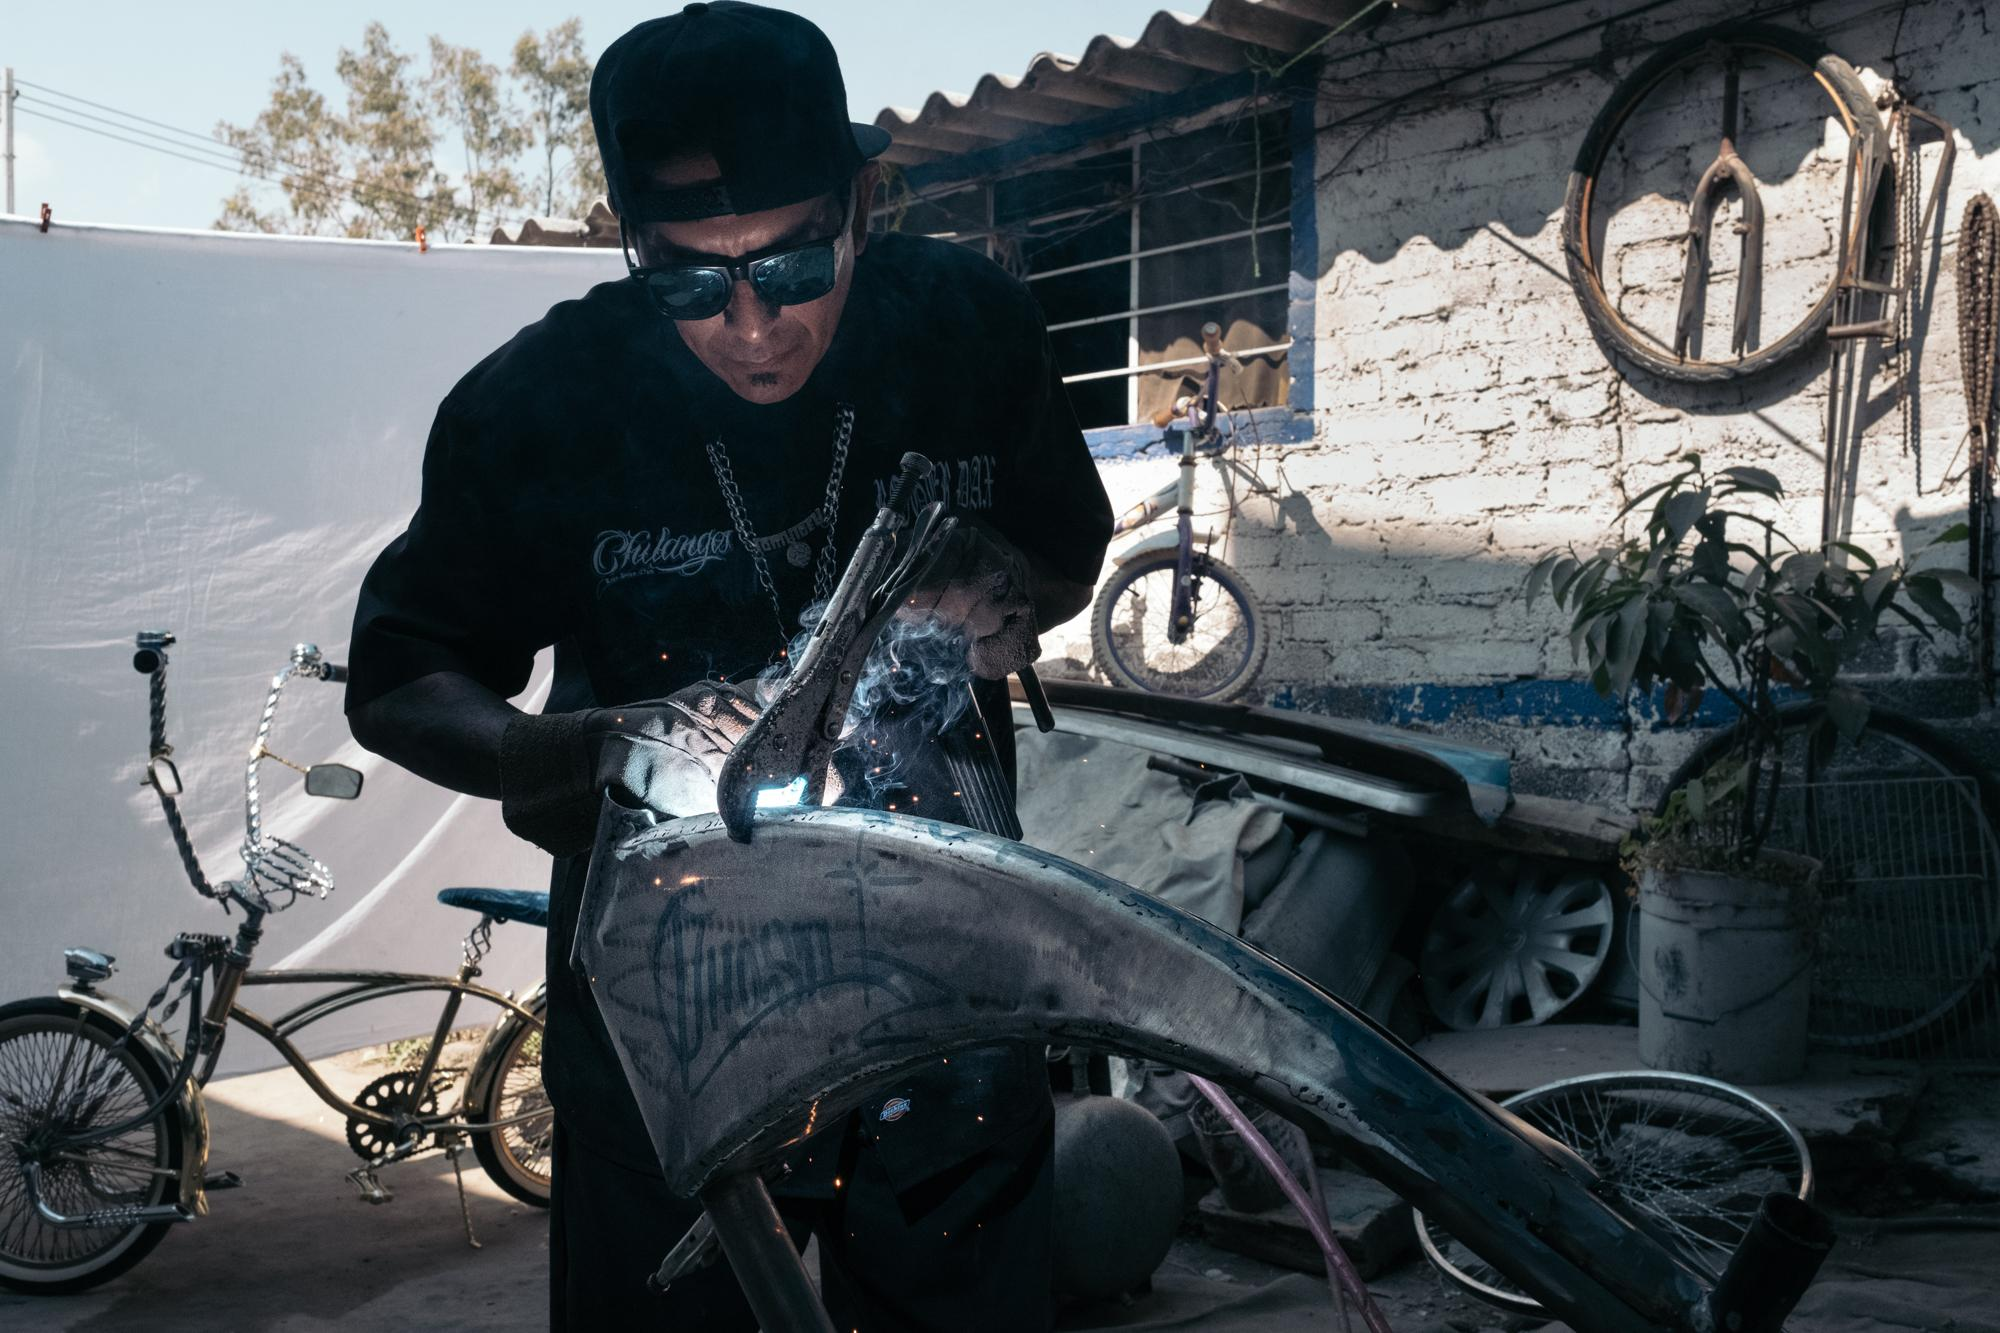 Royer is an auto mechanic; he also builds numerous bike parts for the Club's members. 29/10/17 Ecatepec, Estado de Mexico, Mexico.